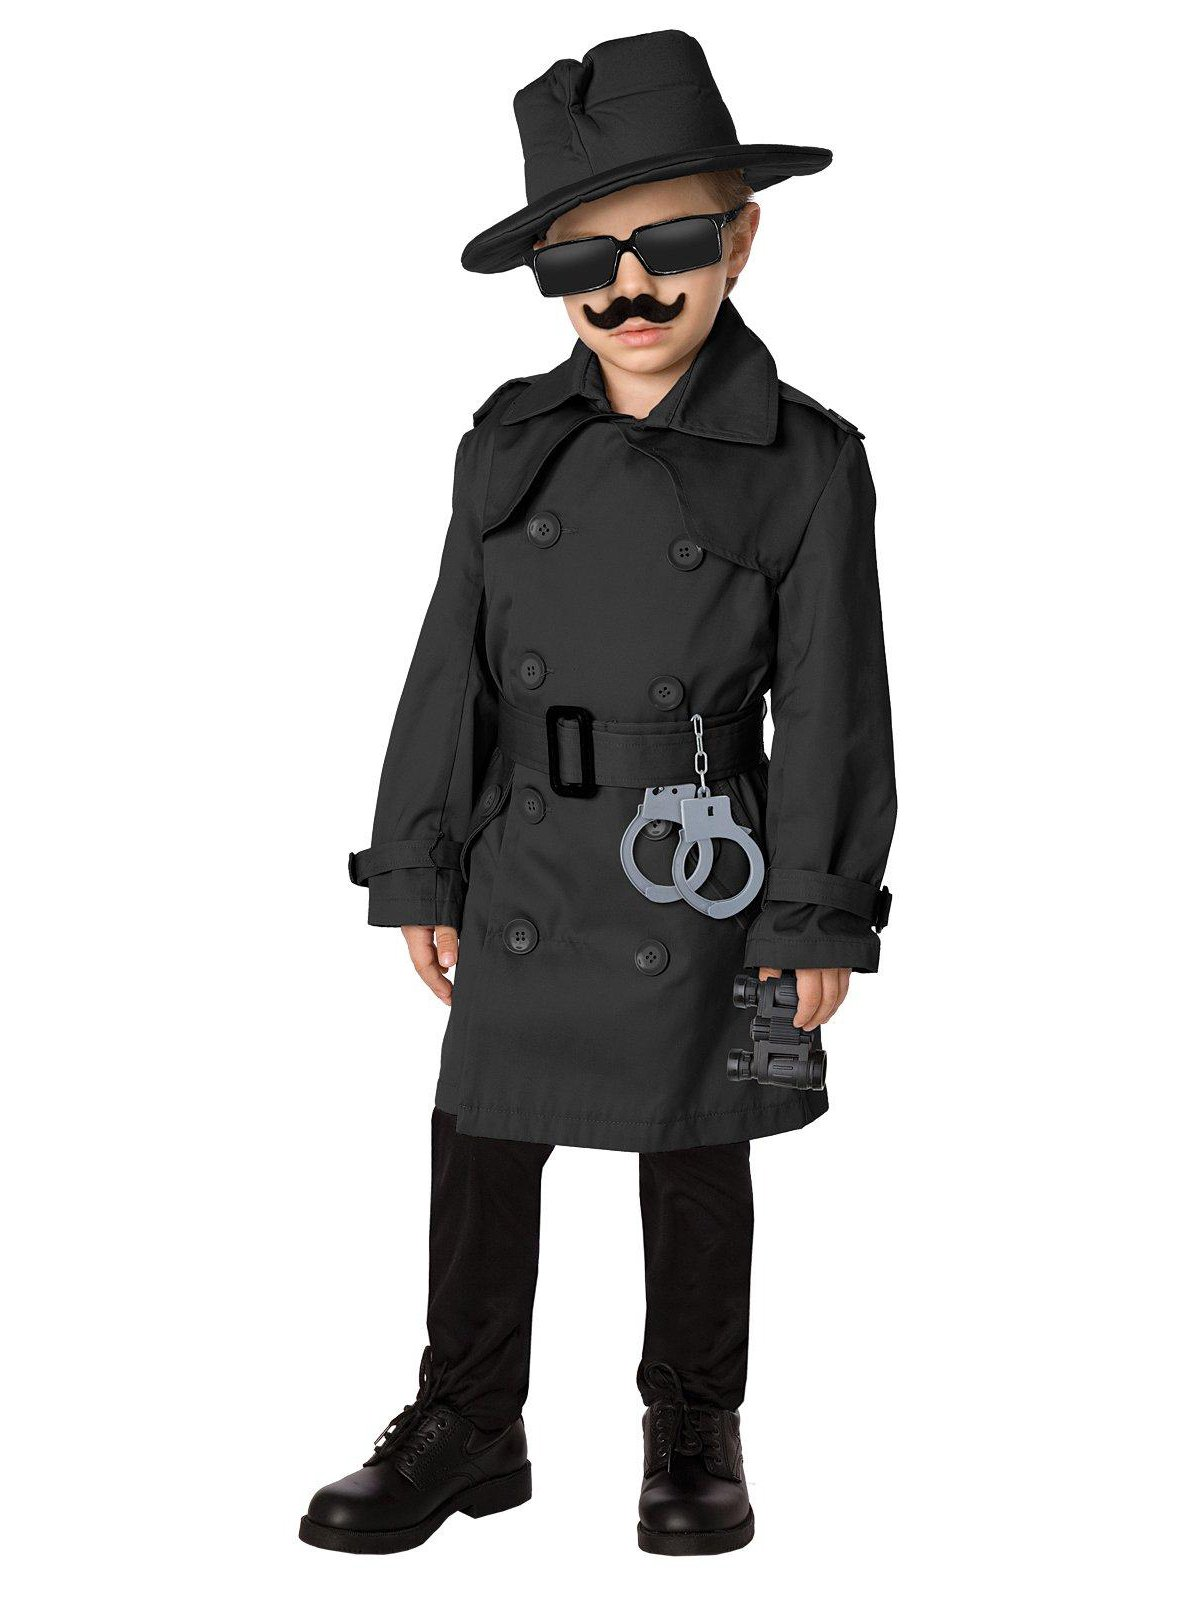 Time AD Inc. 211587 Spy Child Costume Kit - Black - Fits Sizes 4 to 8